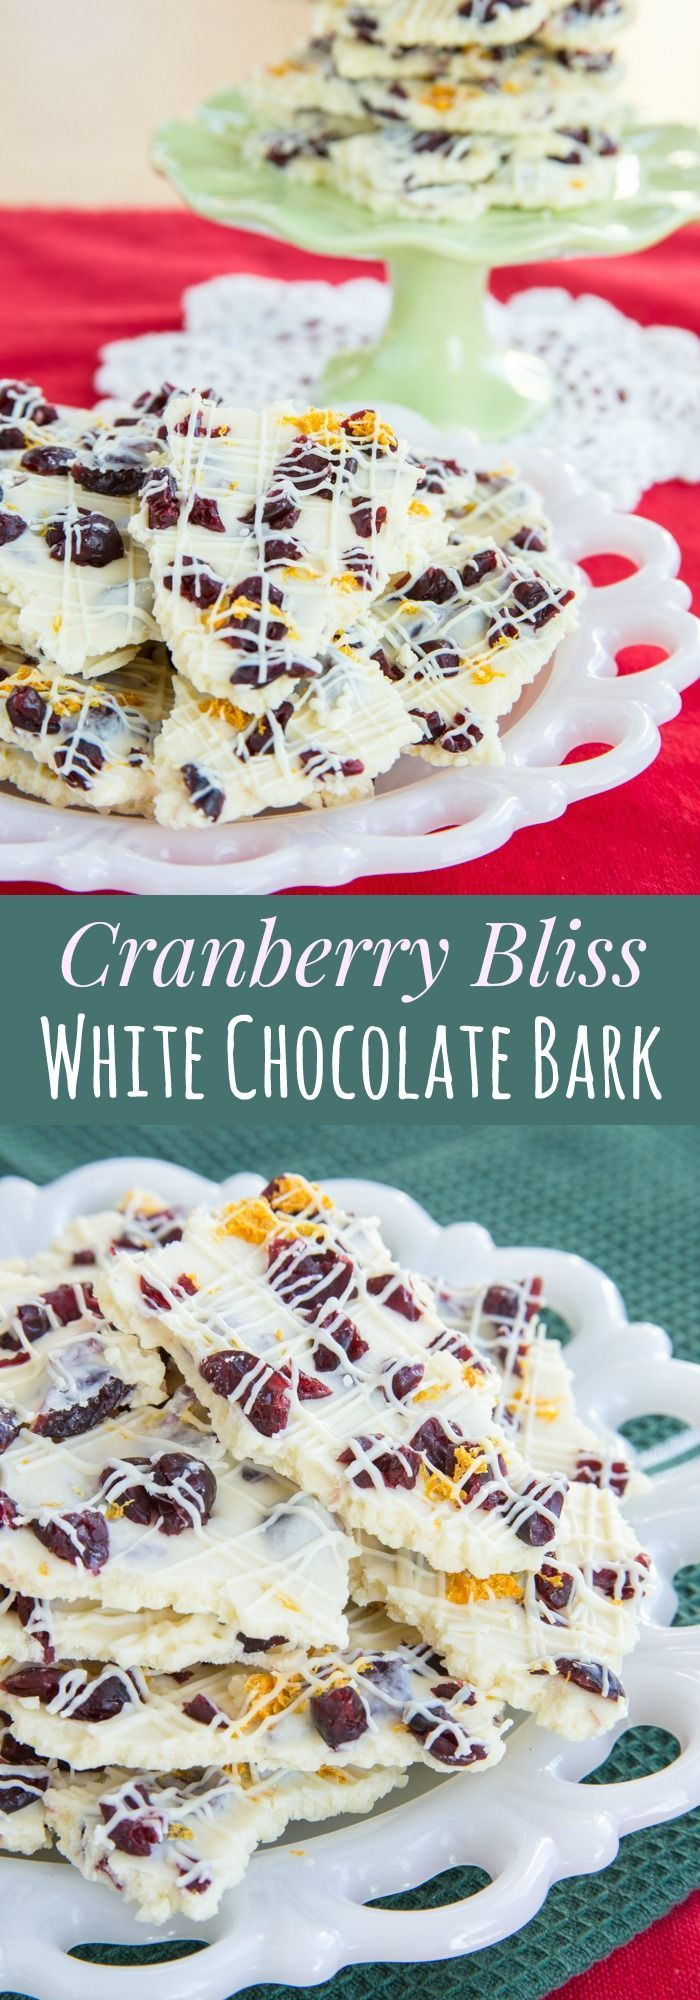 122 best Bark,Candy,Truffles..... images on Pinterest | Chocolate ...